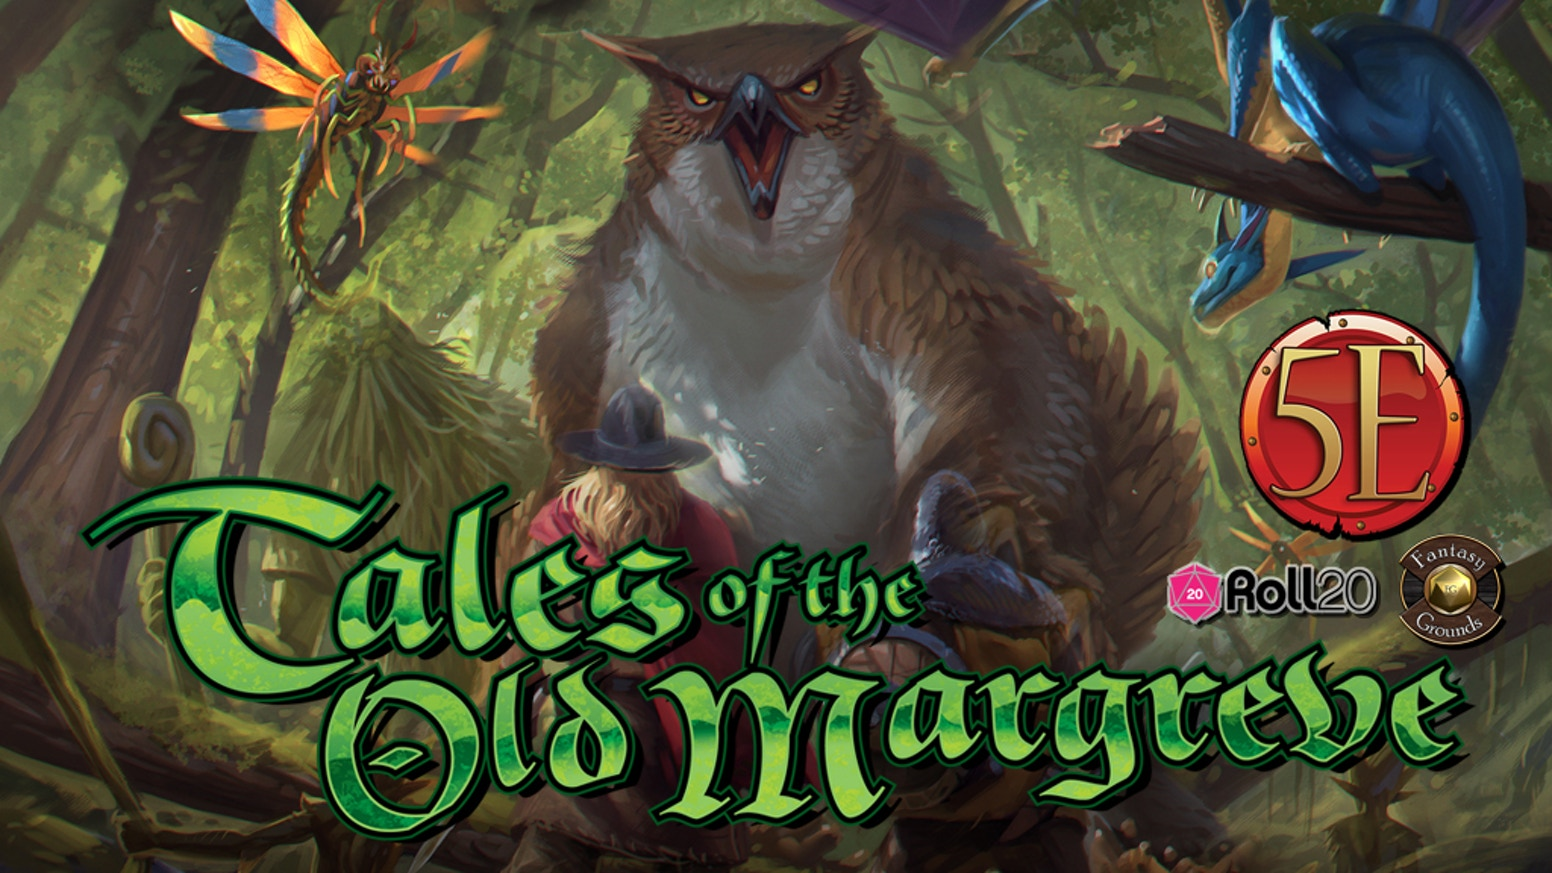 5th Edition roleplaying adventures in the deep and menacing forest, for PCs level 1 to 10. Explore the ancient woods & their mysteries!